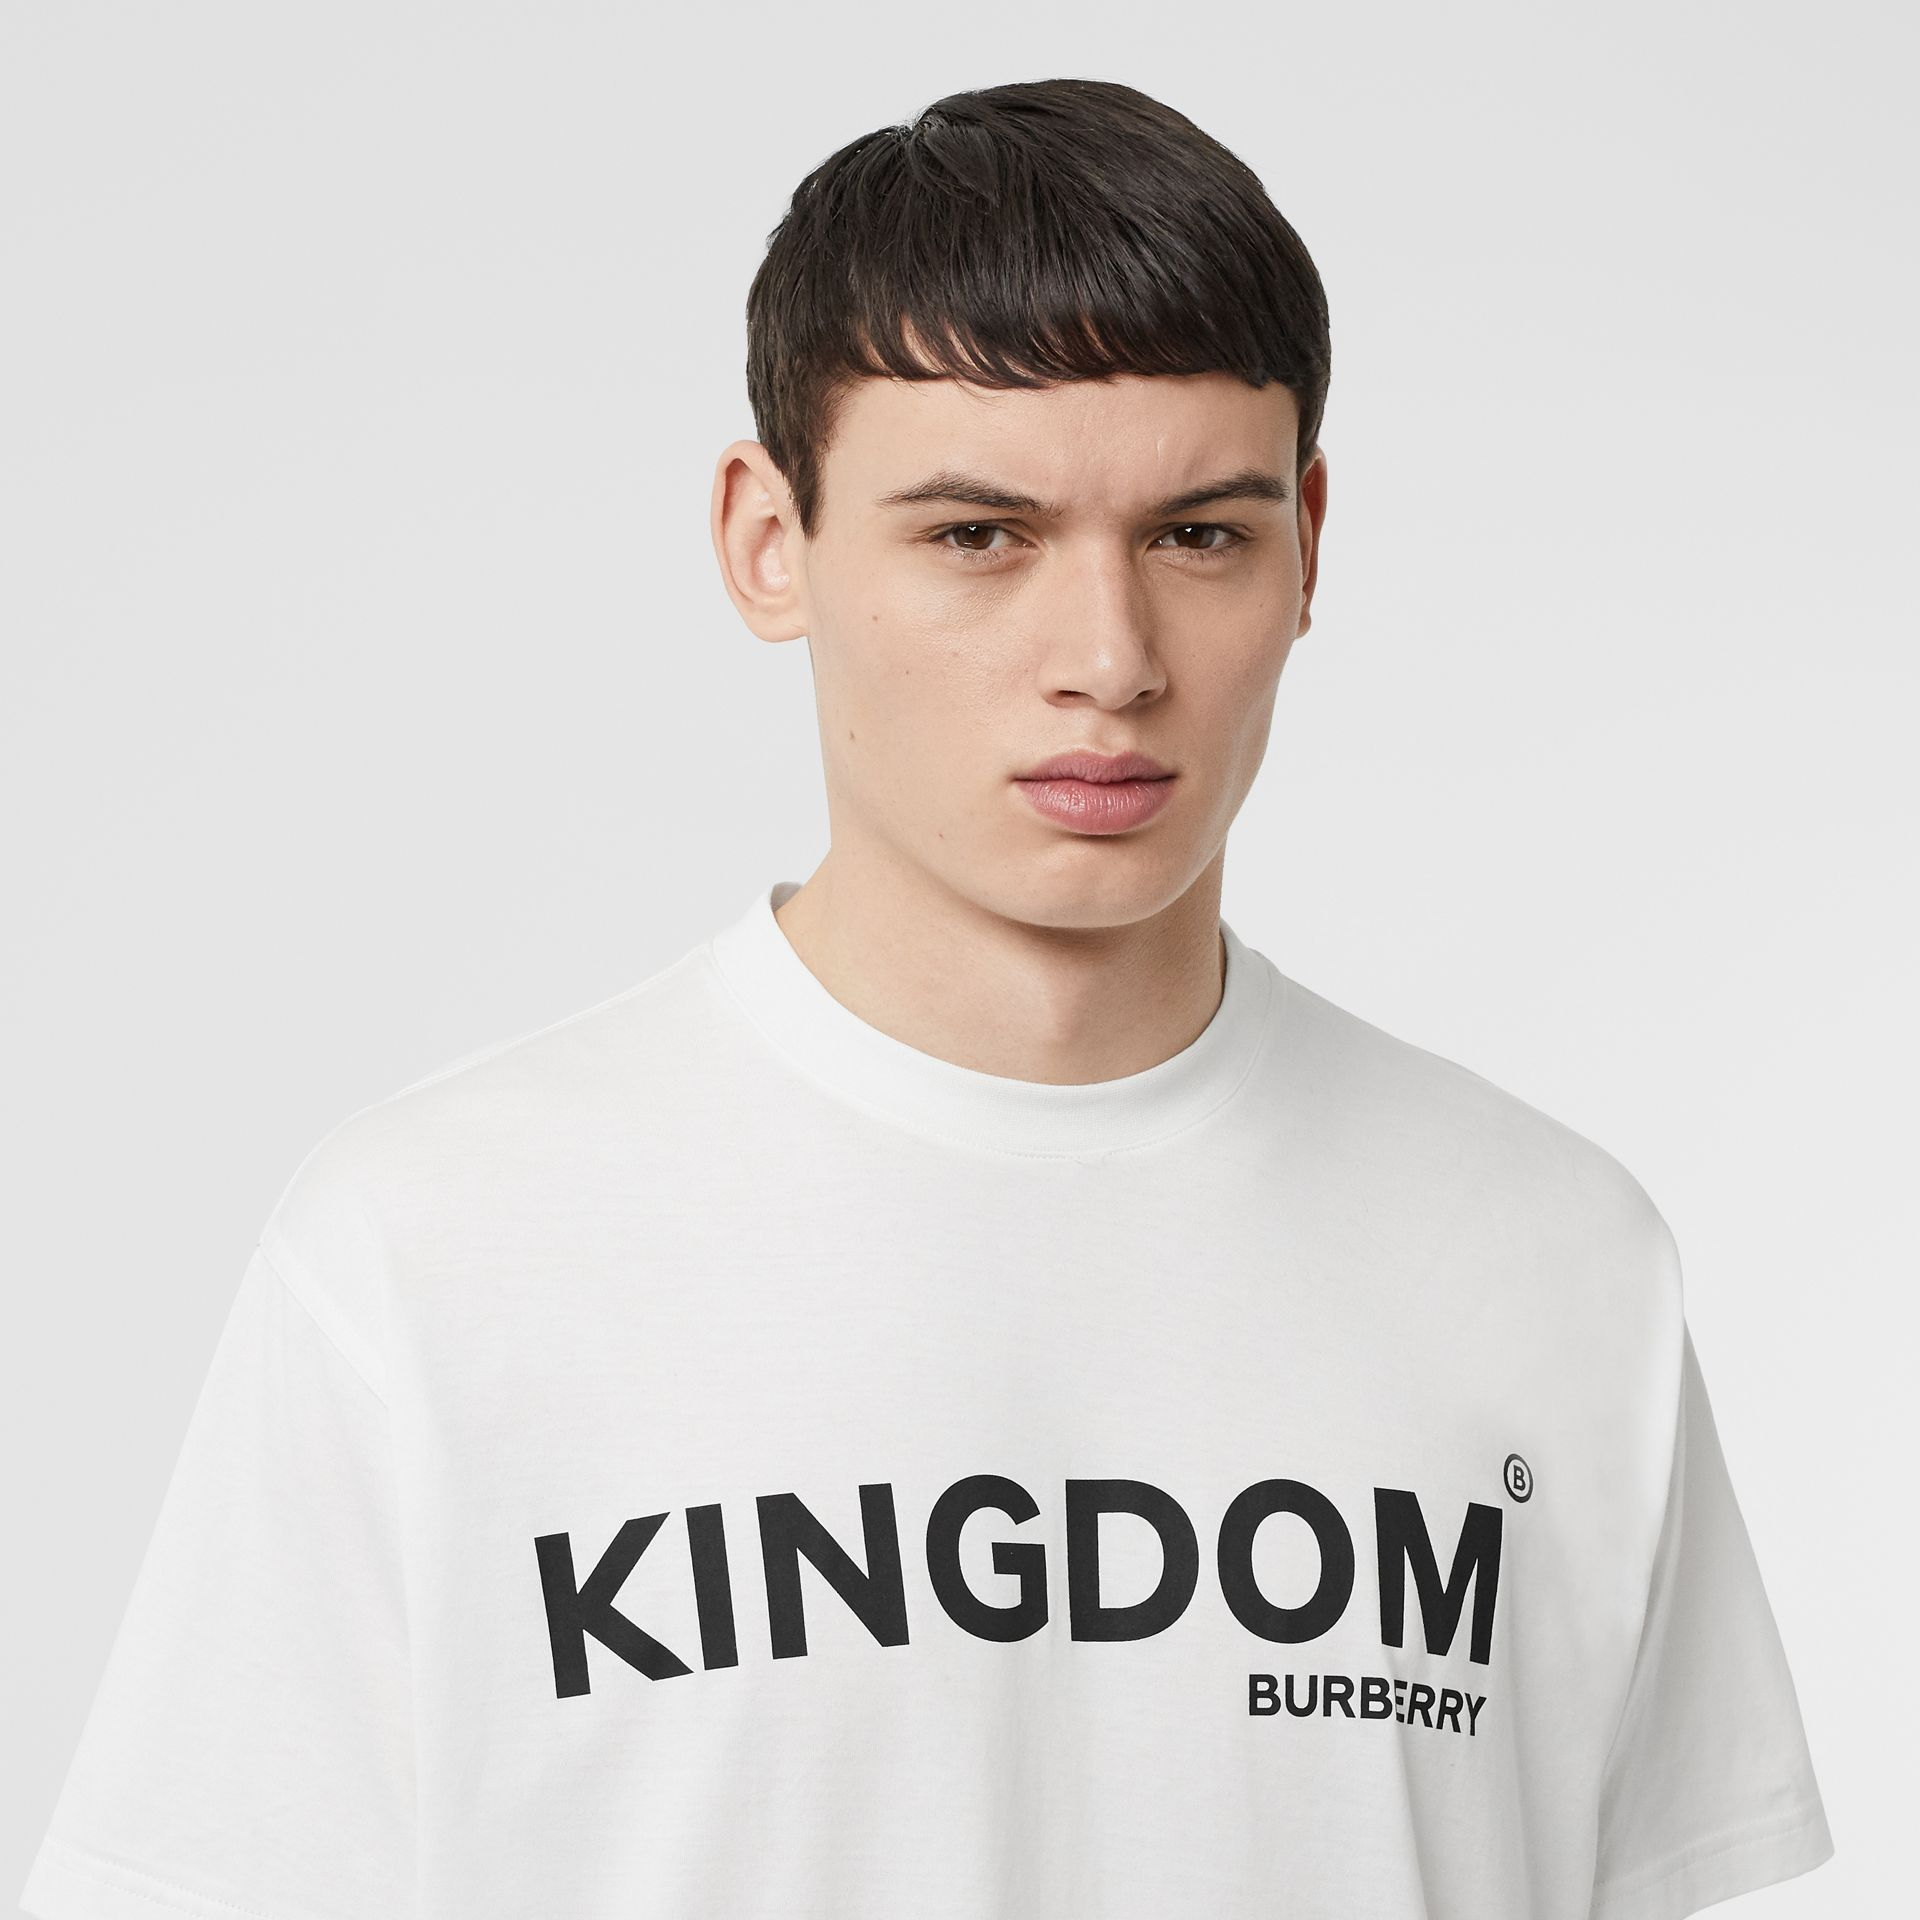 Kingdom Print Cotton T-shirt in White - Men | Burberry - gallery image 4